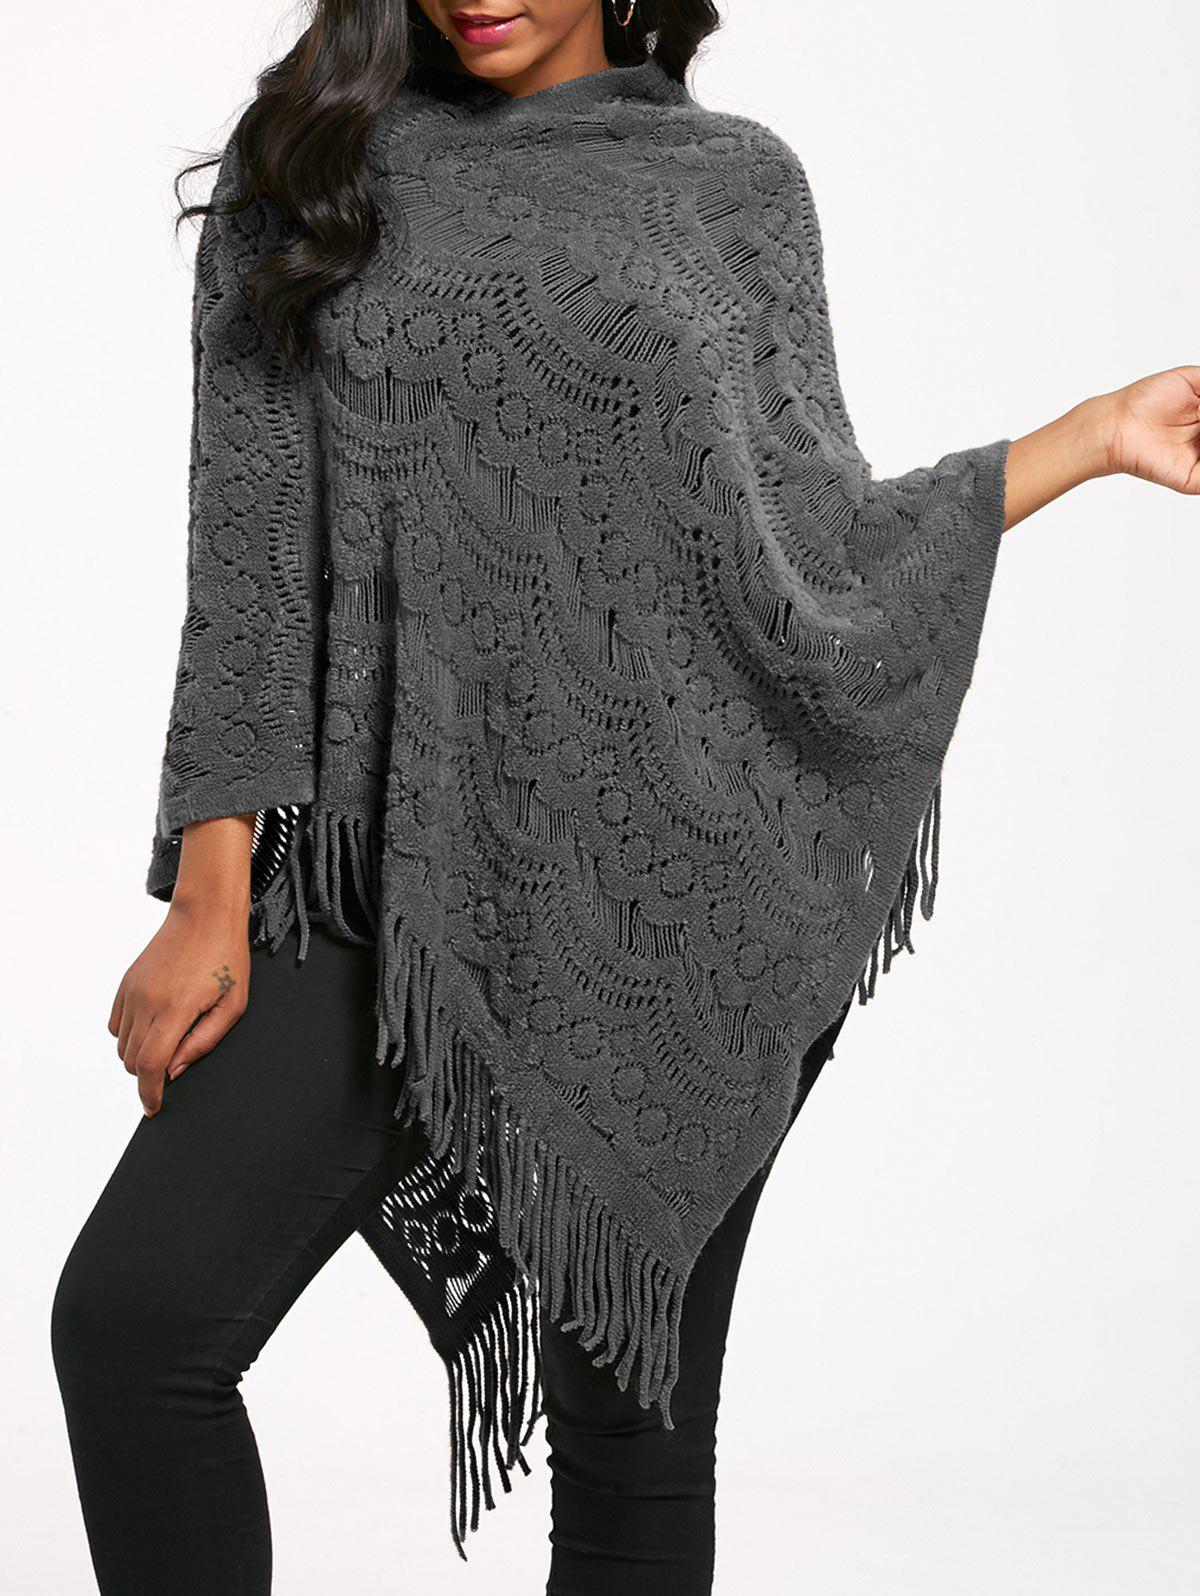 New Fringed Asymmetrical Crochet Knit Poncho